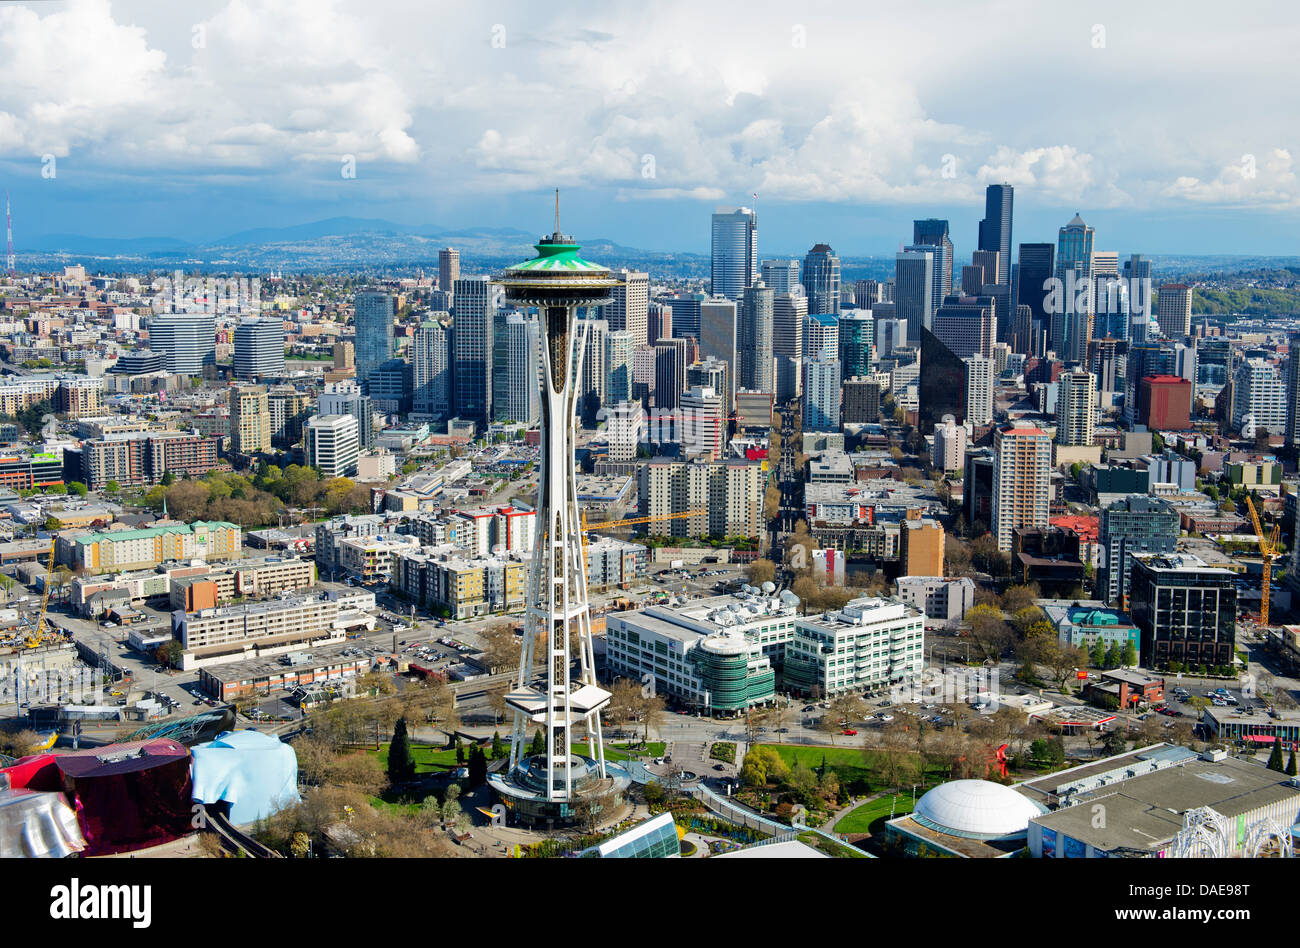 Aerial view of space needle seattle washington state usa stock photo 58092296 alamy for Build on your lot washington state